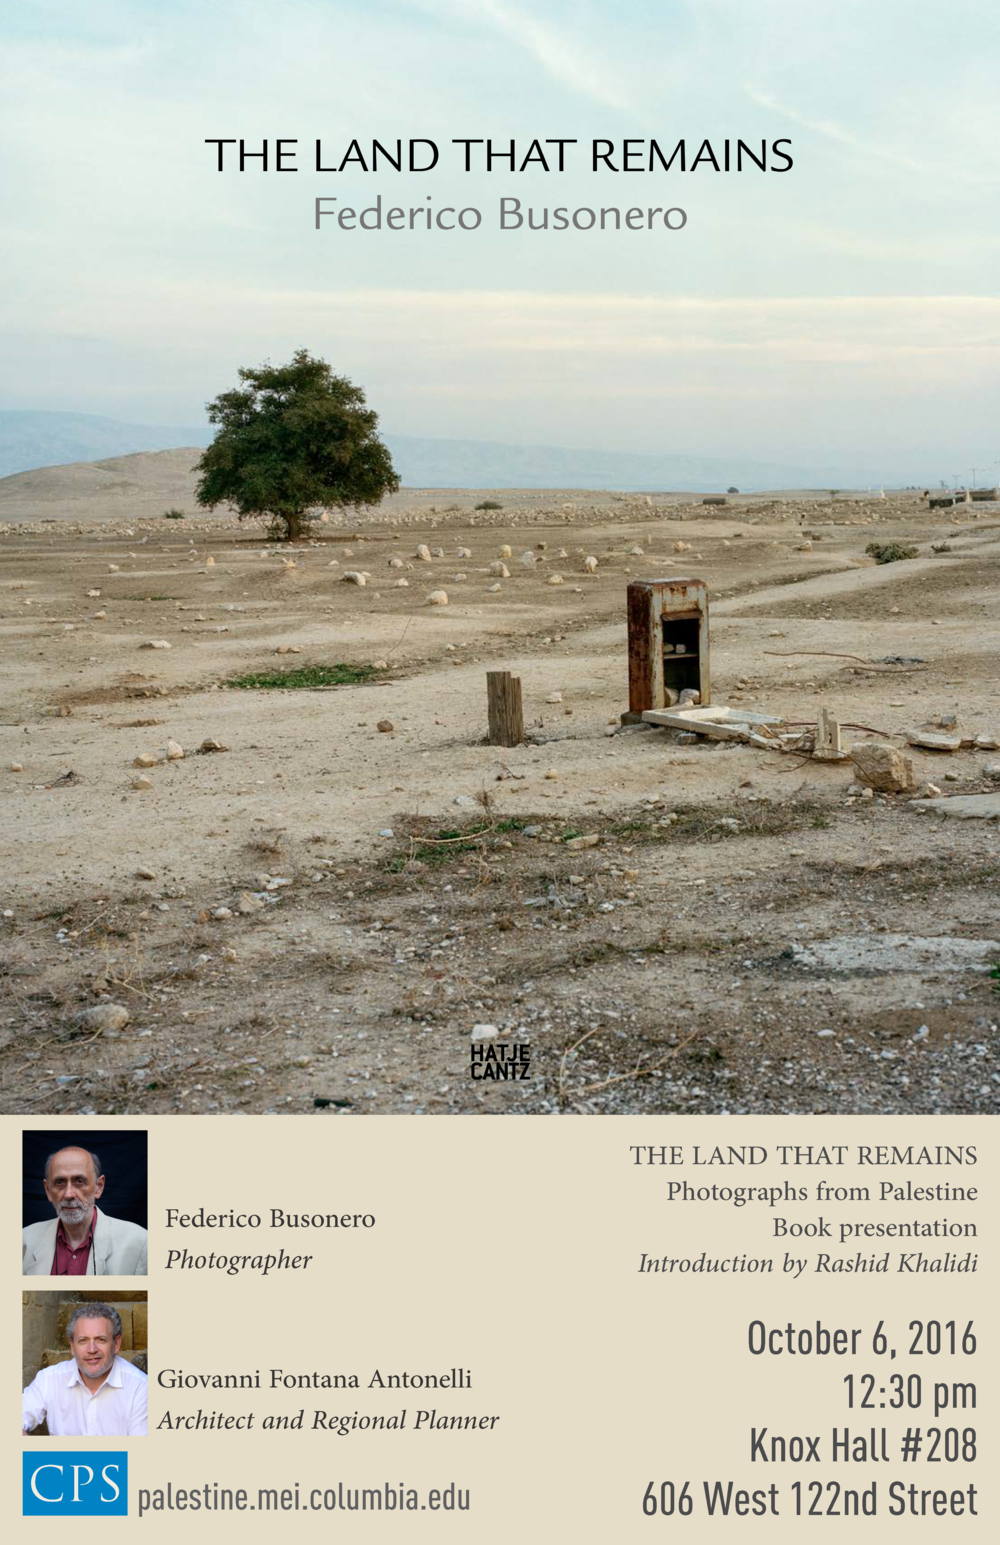 THE LAND THAT REMAINS 79 color photographs 176 pages Photographs: Federico Busonero Photo editors: Anne Sanciaud-Azanza, Federico Busonero Texts:  The Solitude of the Gods  - Anne Sanciaud-Azanza  The Fourth Landscape  – Giovanni Fontana Antonelli  The Land That Remains  – Federico Busonero Book design, editor, pre press: Brooks Walker Publisher: Hatje Cantz Verlag, Ostfildern, Germany Publication date: April 2016  First English edition